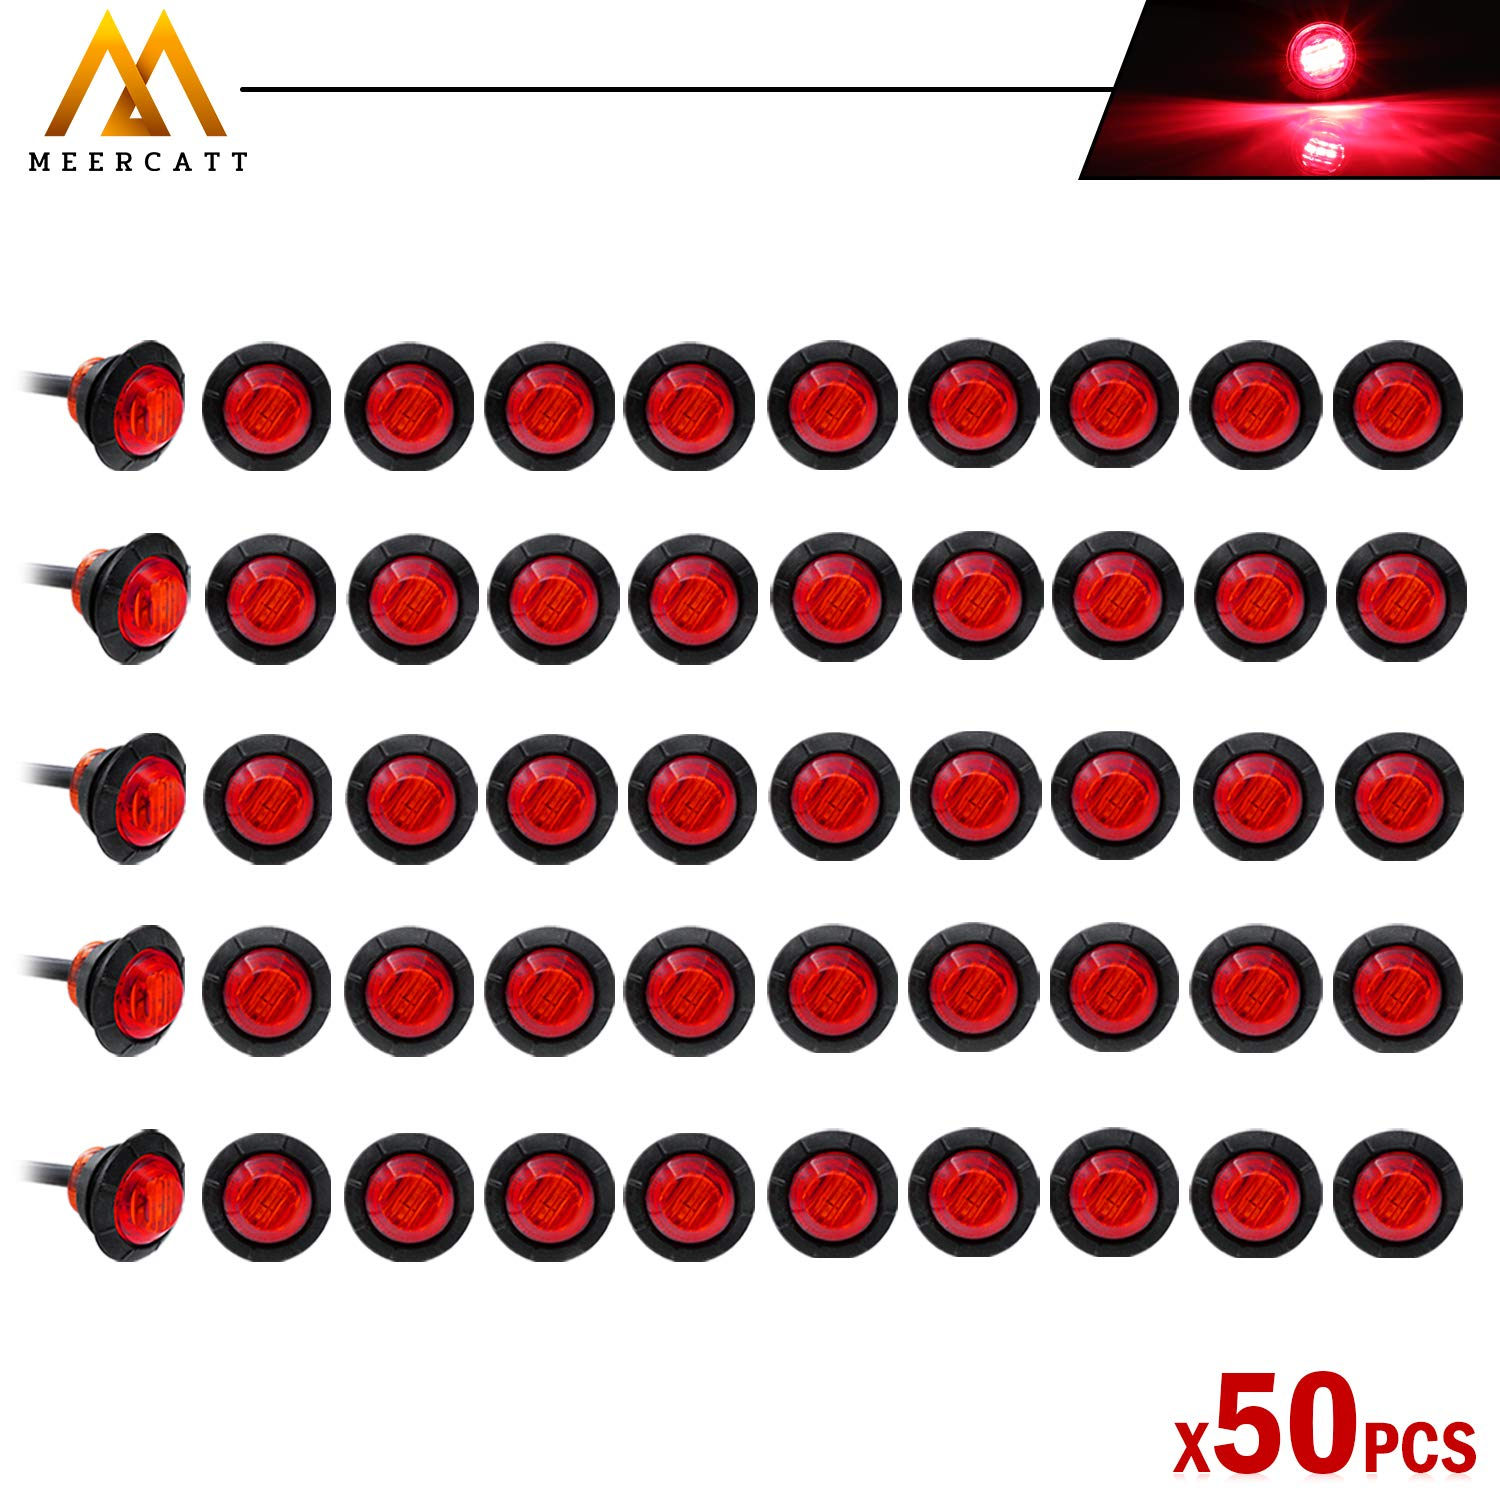 Meerkatt Pack of 50 3//4 Inch Mini Small Round Red LED Flush Mount Side Marker Clearance Lamp Indicator SMD Light Universal Truck Marine Camper Bus Trailer Flatbed RV grommets 12V DC Waterproof